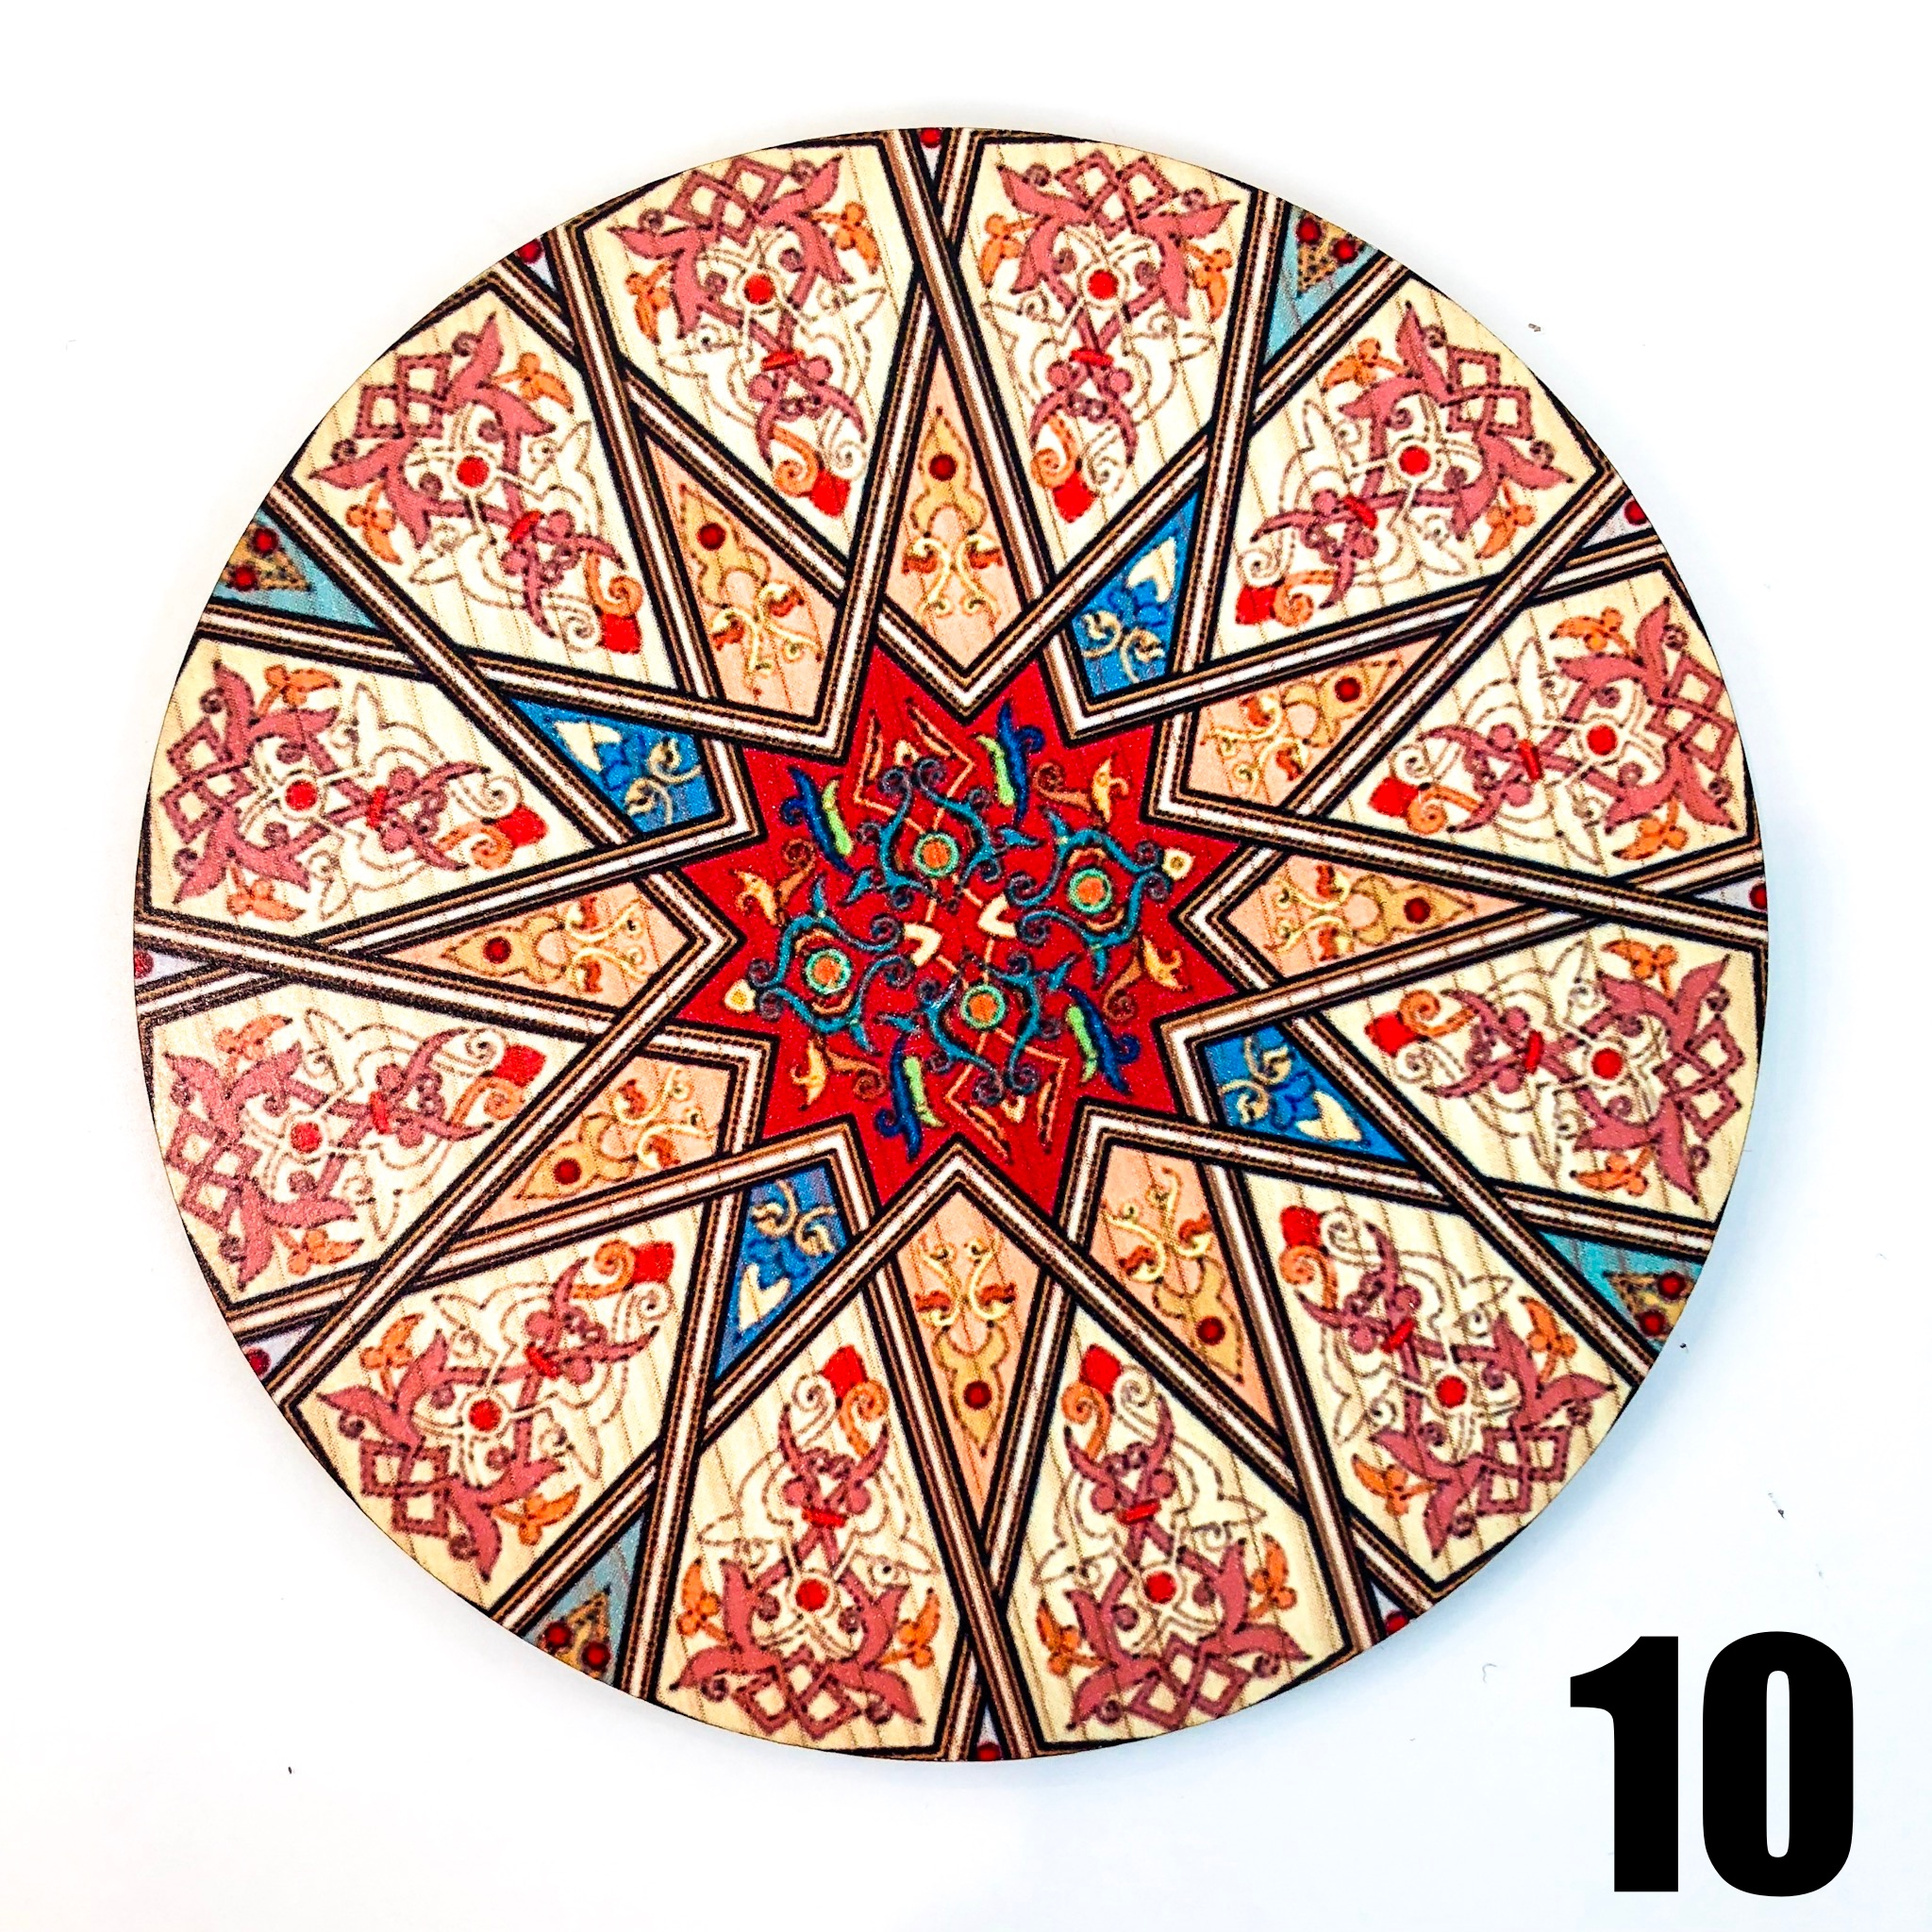 Persian Patterns: Wooden Round Coasters With Persian Patterns ( Available In